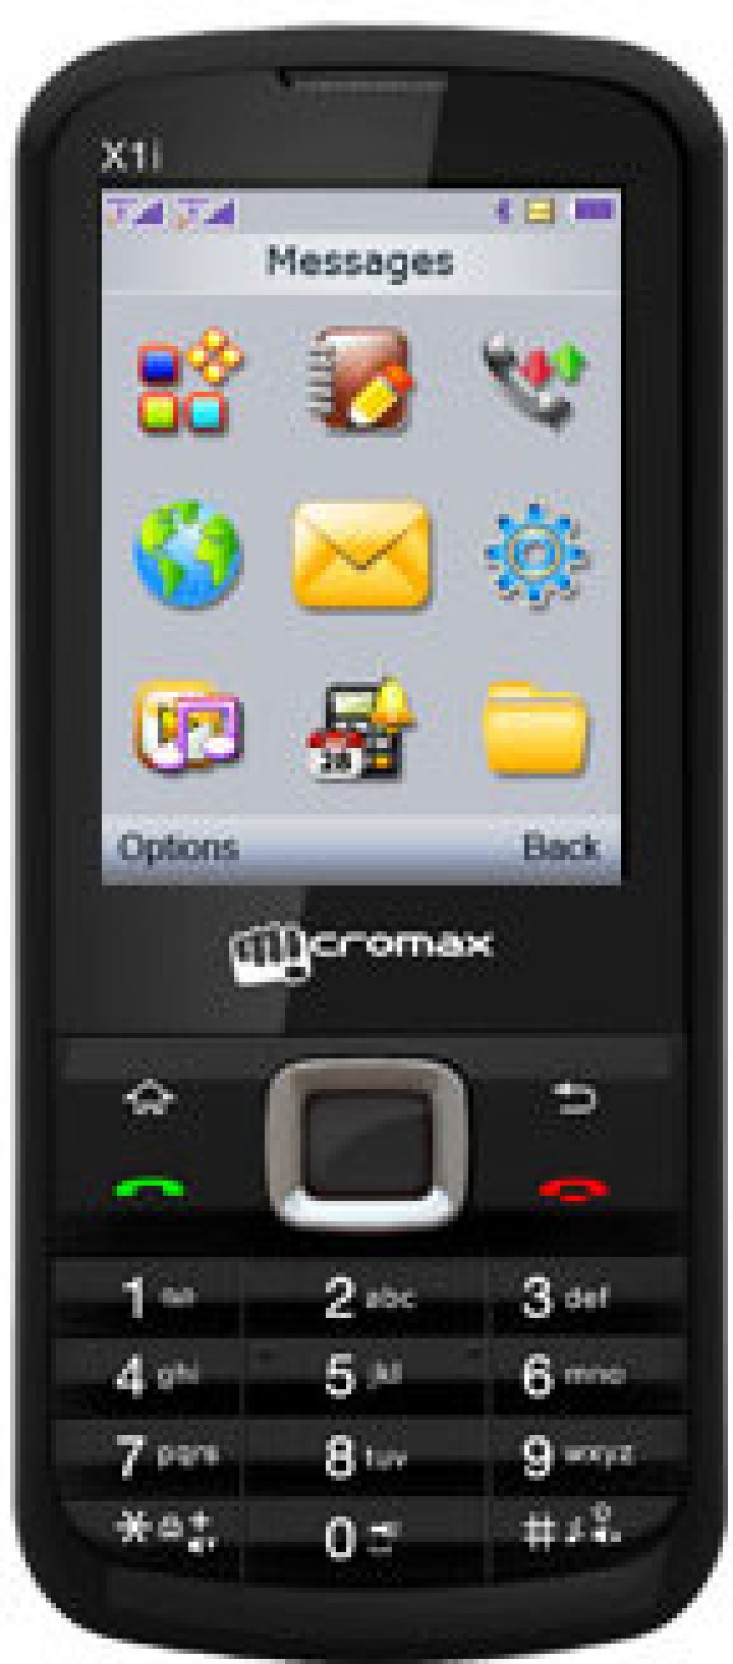 Micromax Q7 - Full phone specifications